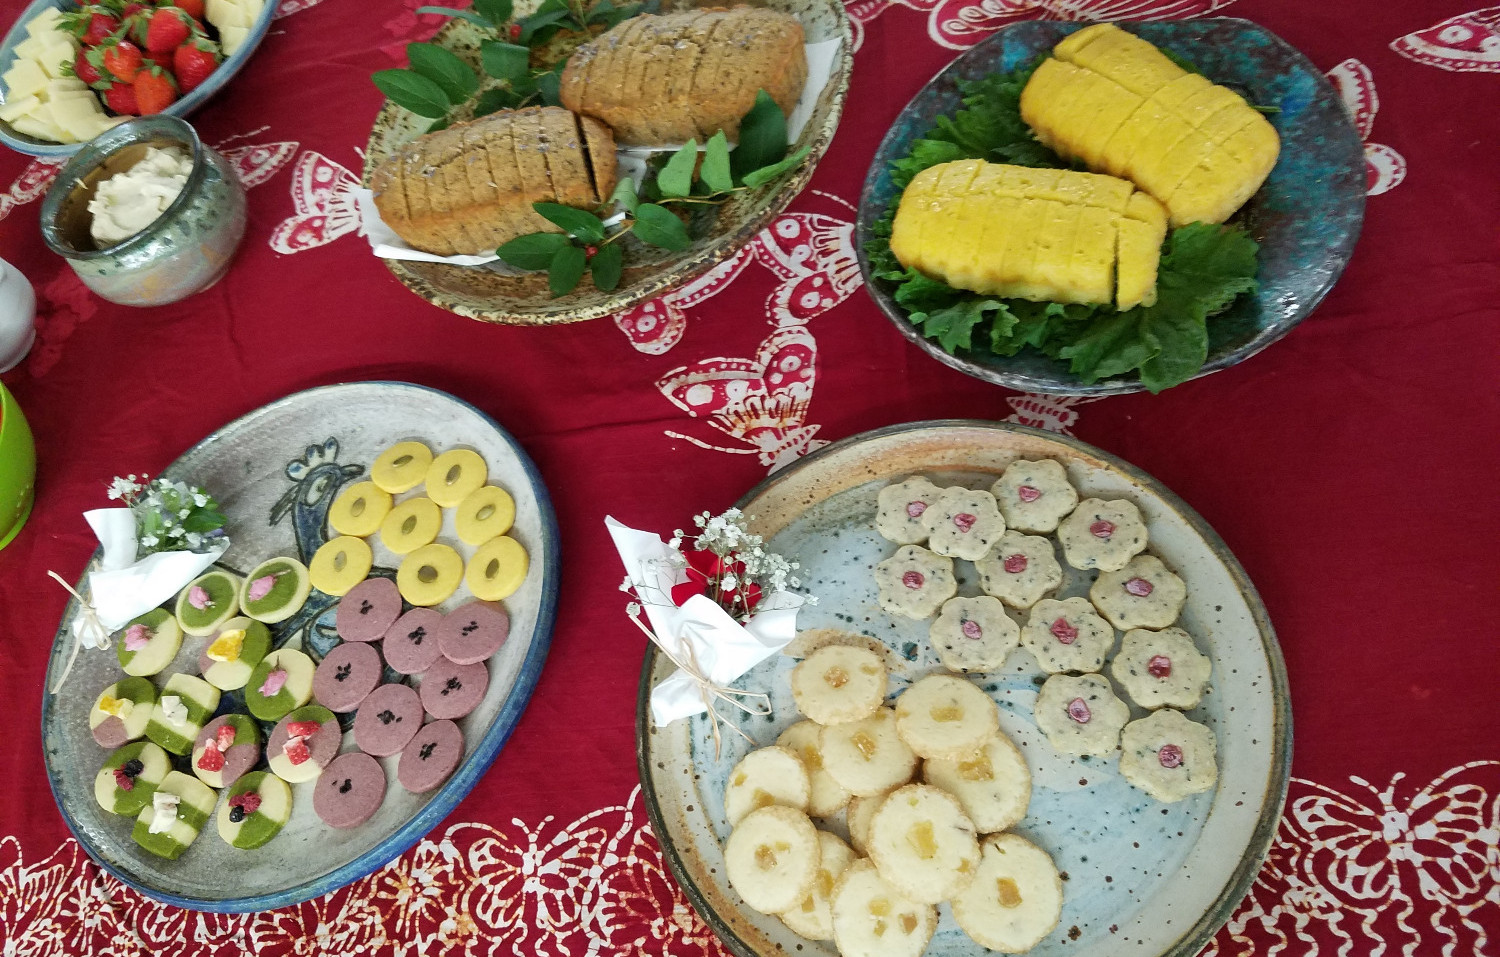 Catered Event Assortment